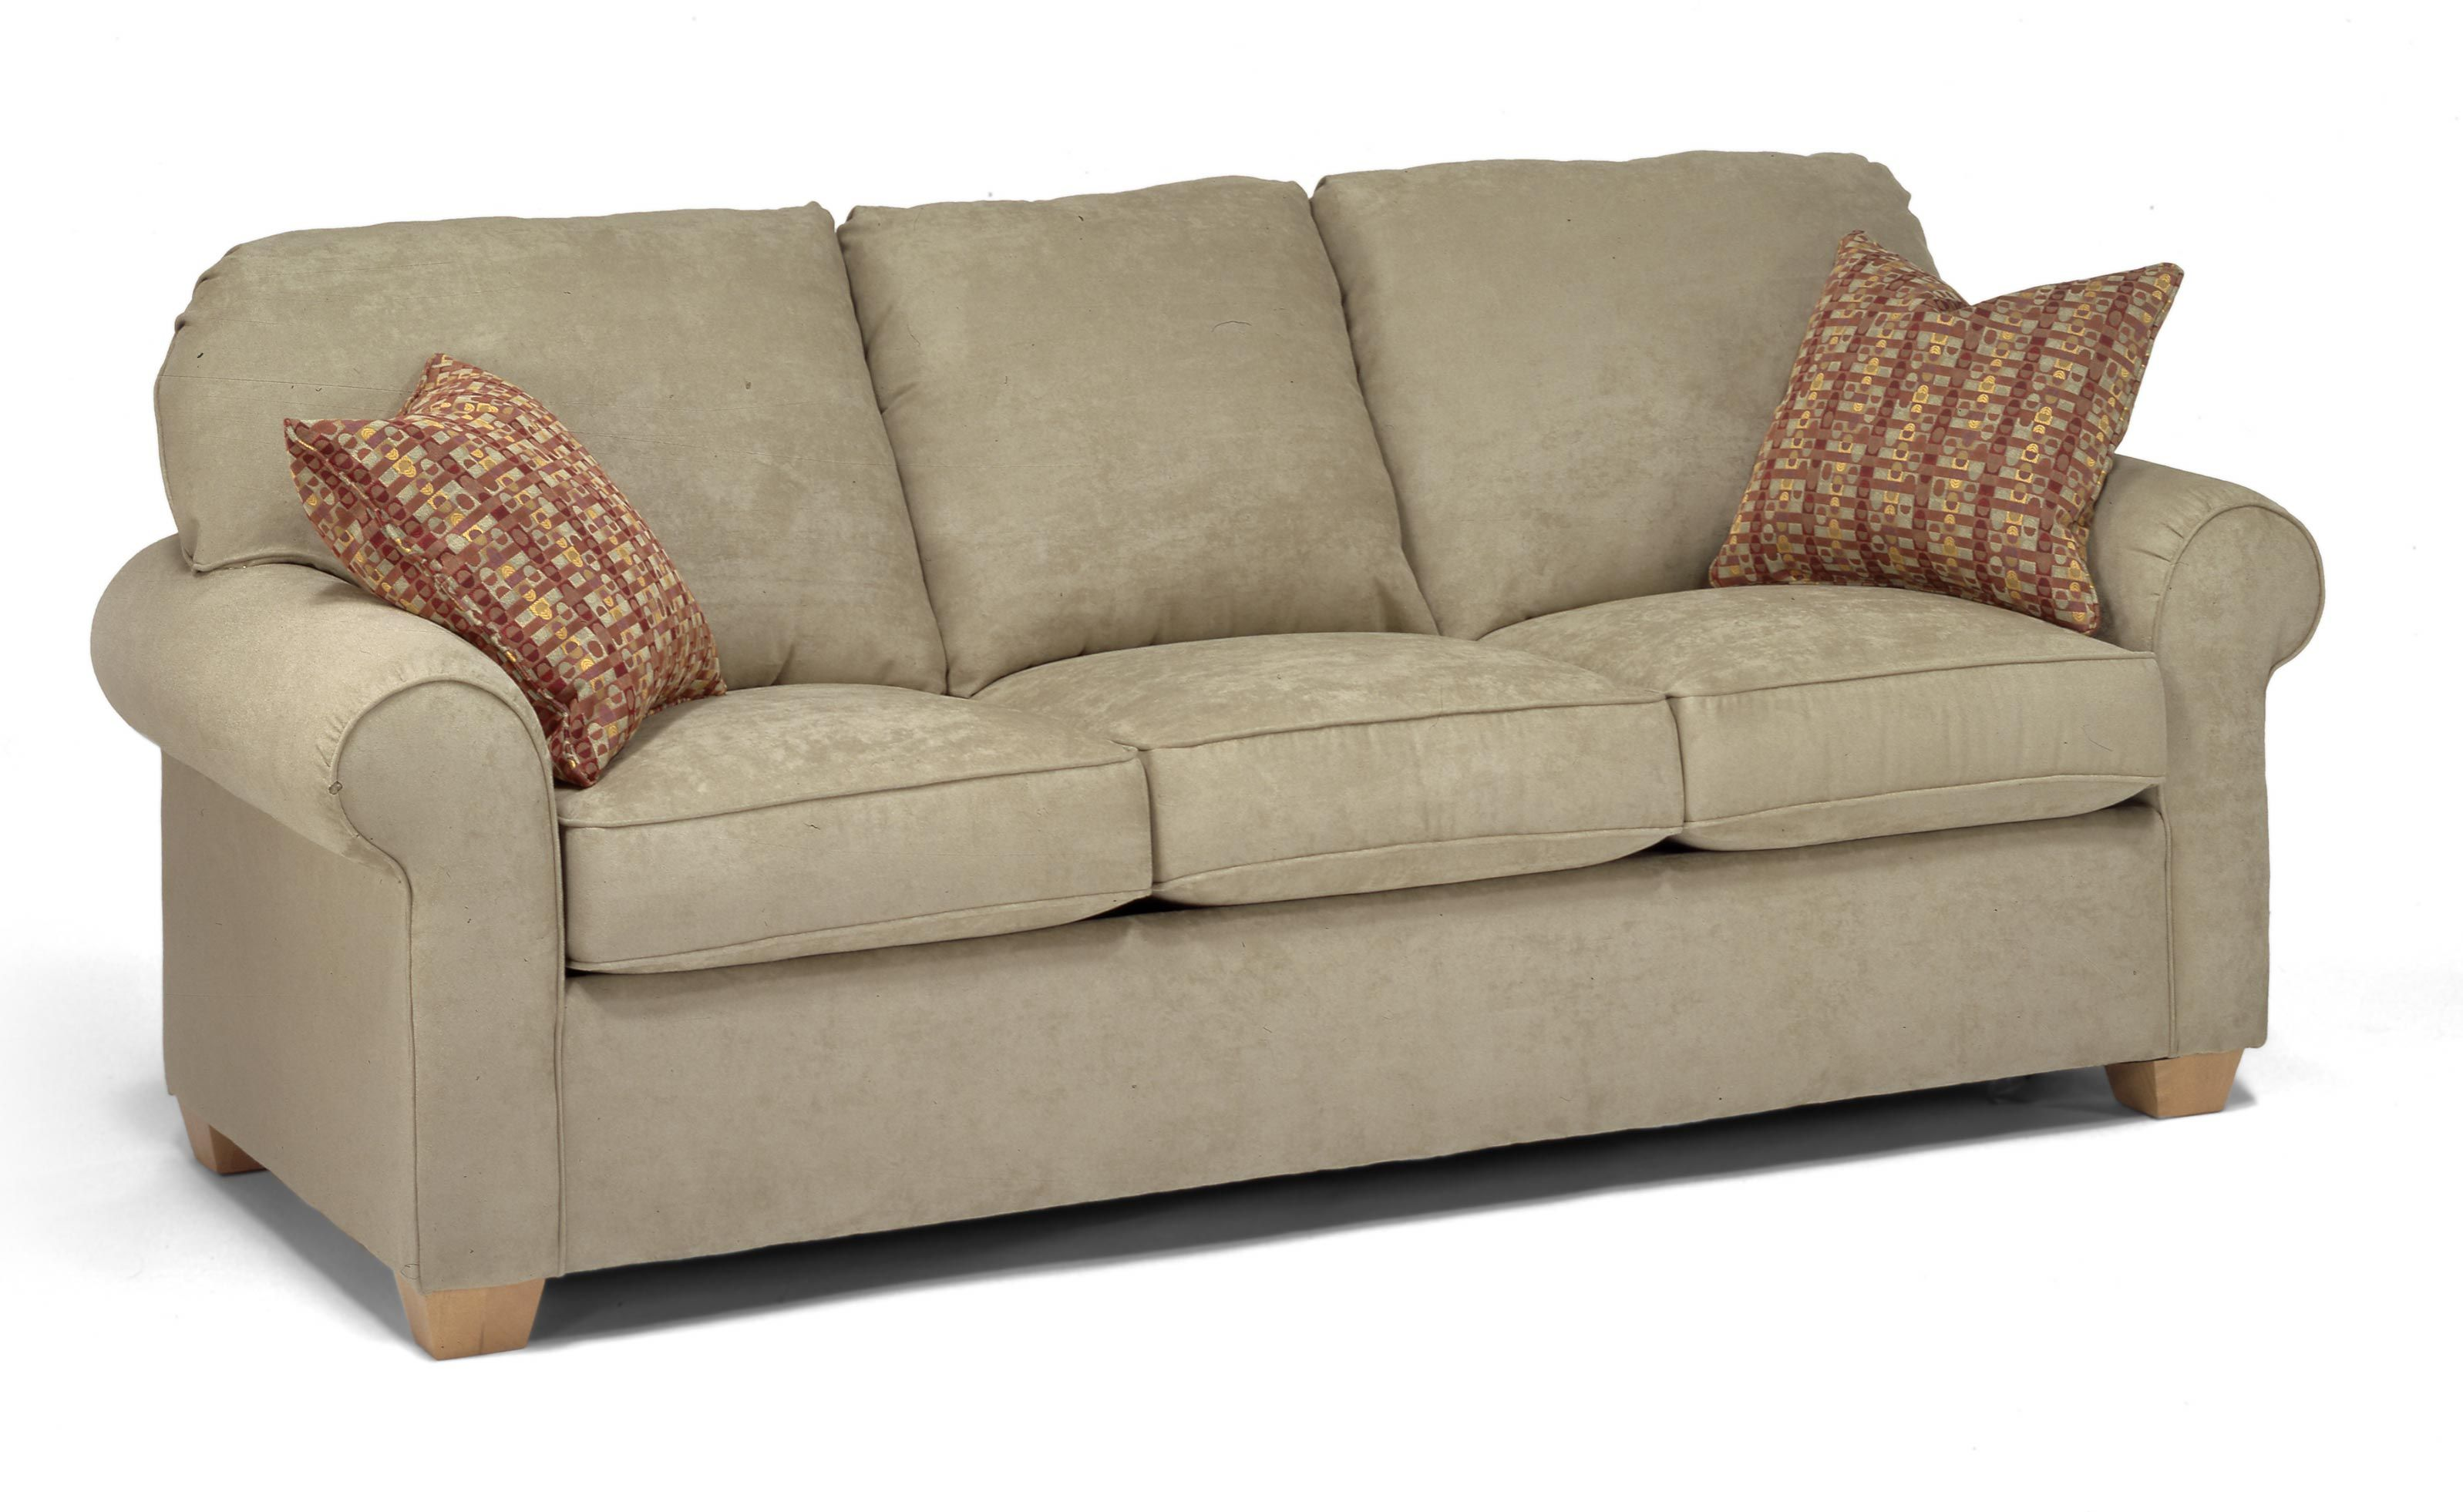 Paige Queen Sleeper 5535 44 Sleeper Sofas from Flexsteel at